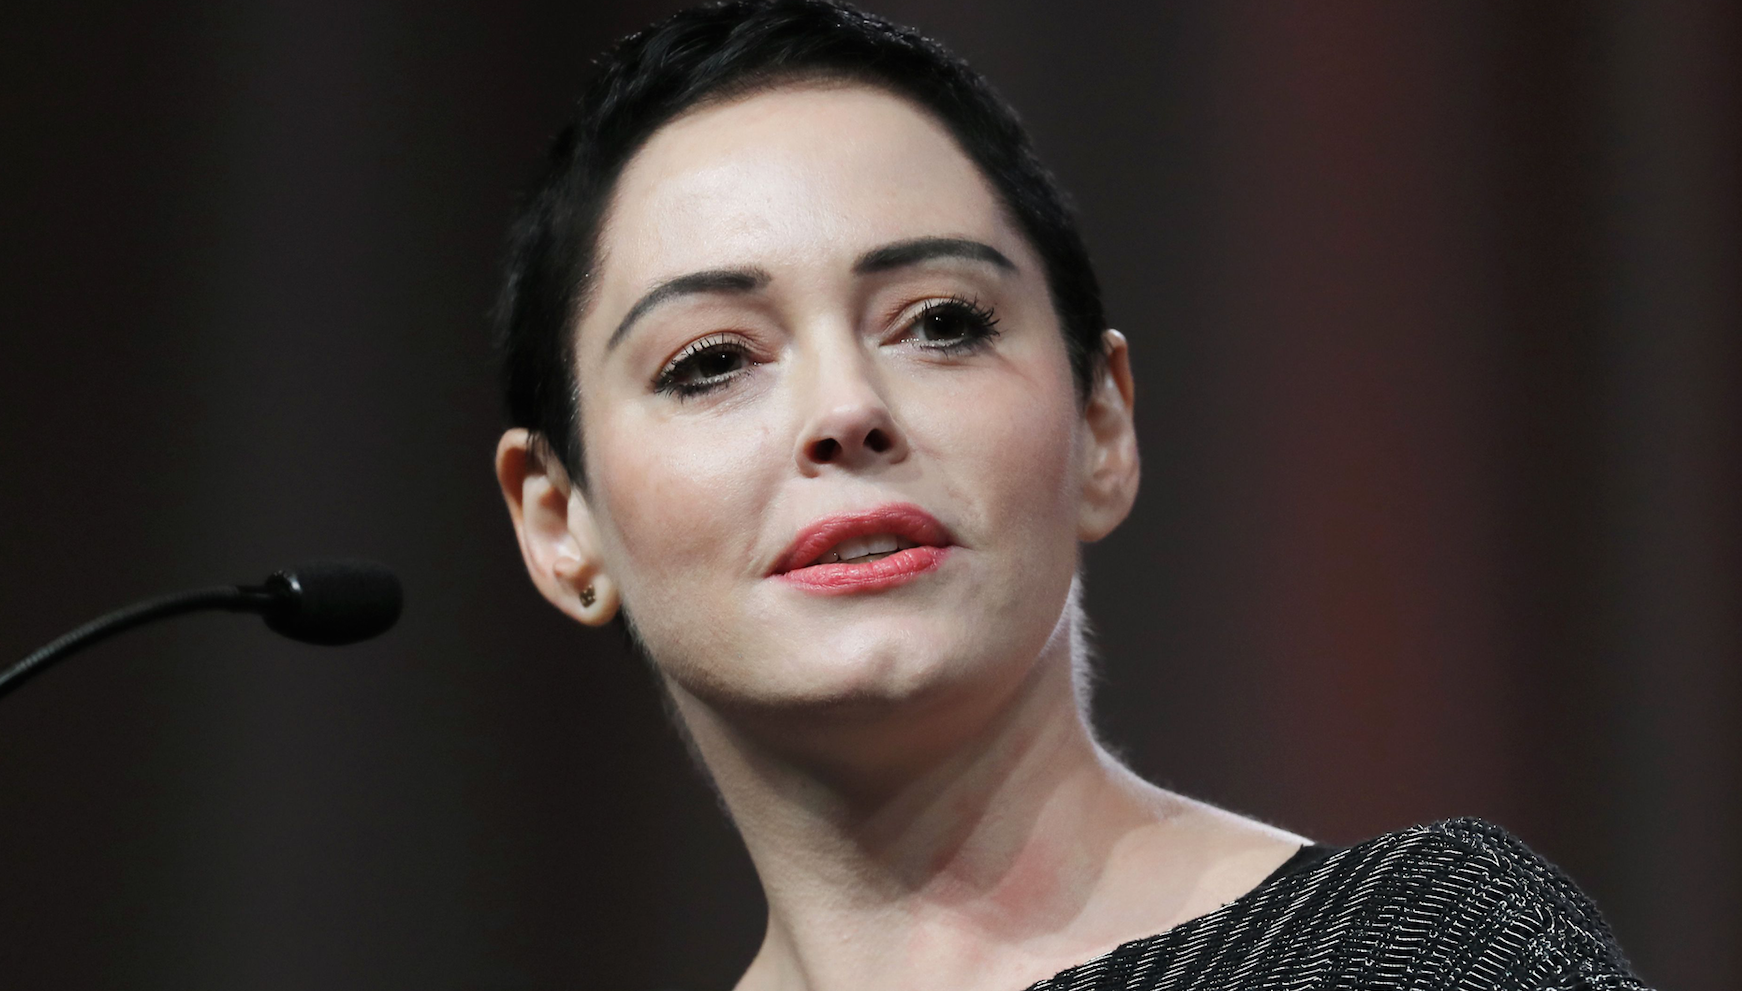 Snapchat Rose McGowan nudes (88 photos), Twitter